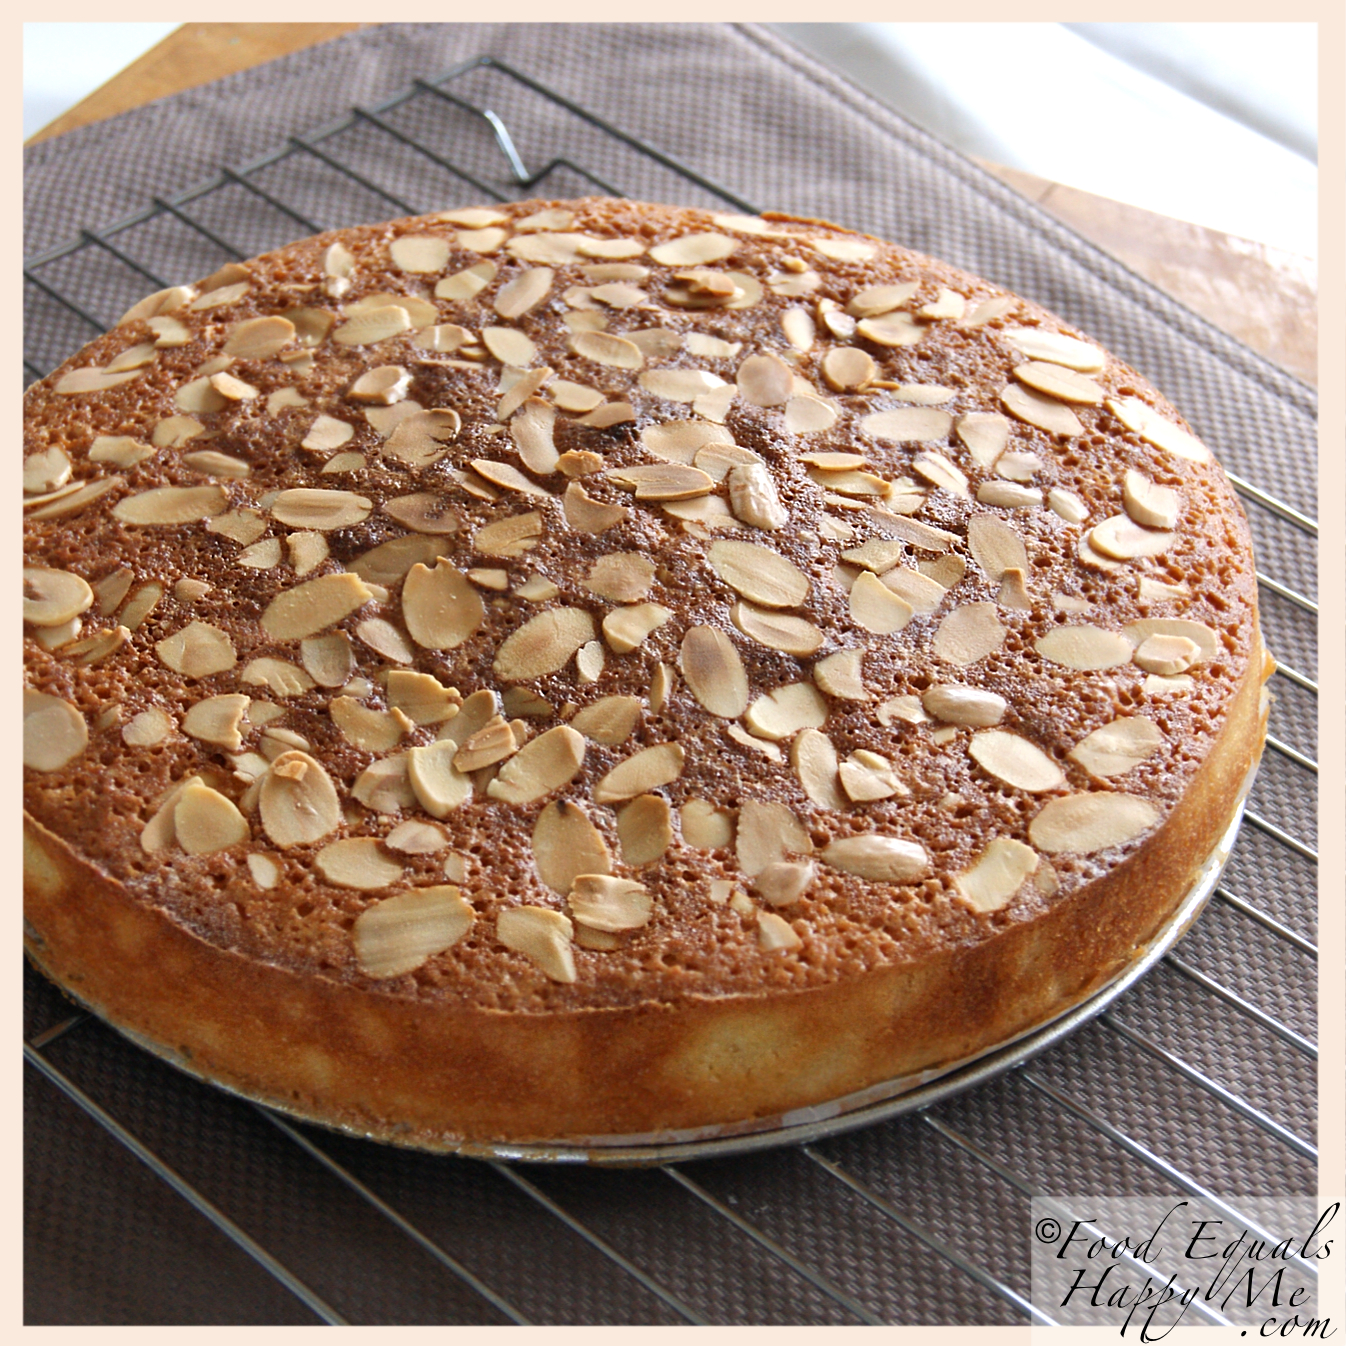 Almond and coconut cake recipe